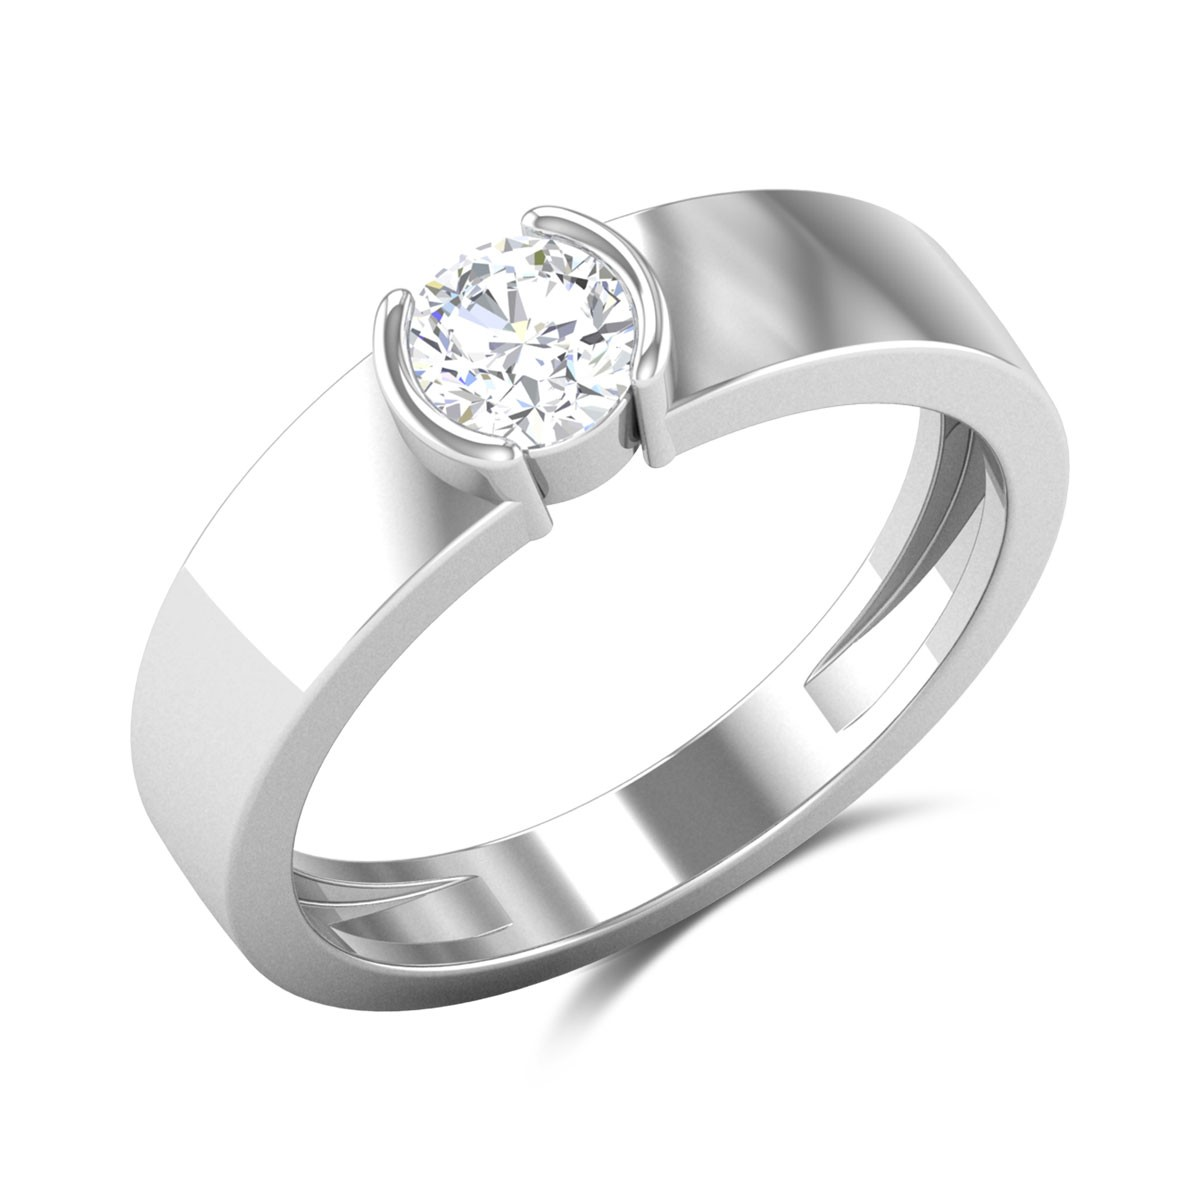 Aslan Solitaire Ring